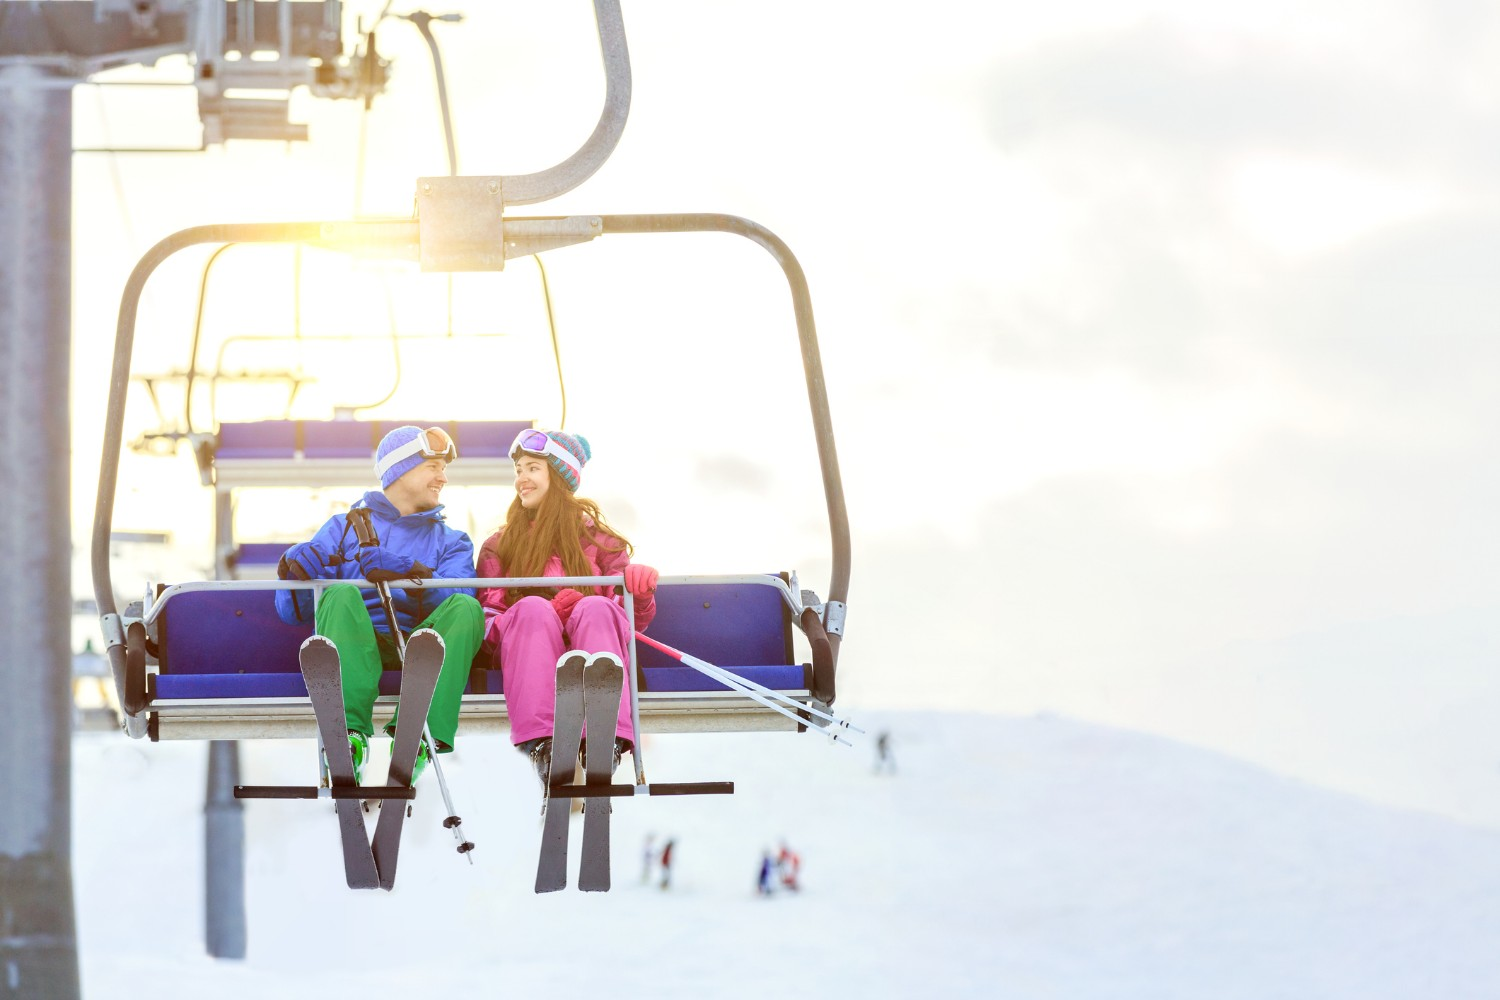 Young couple with skis outdoors on the ski lift